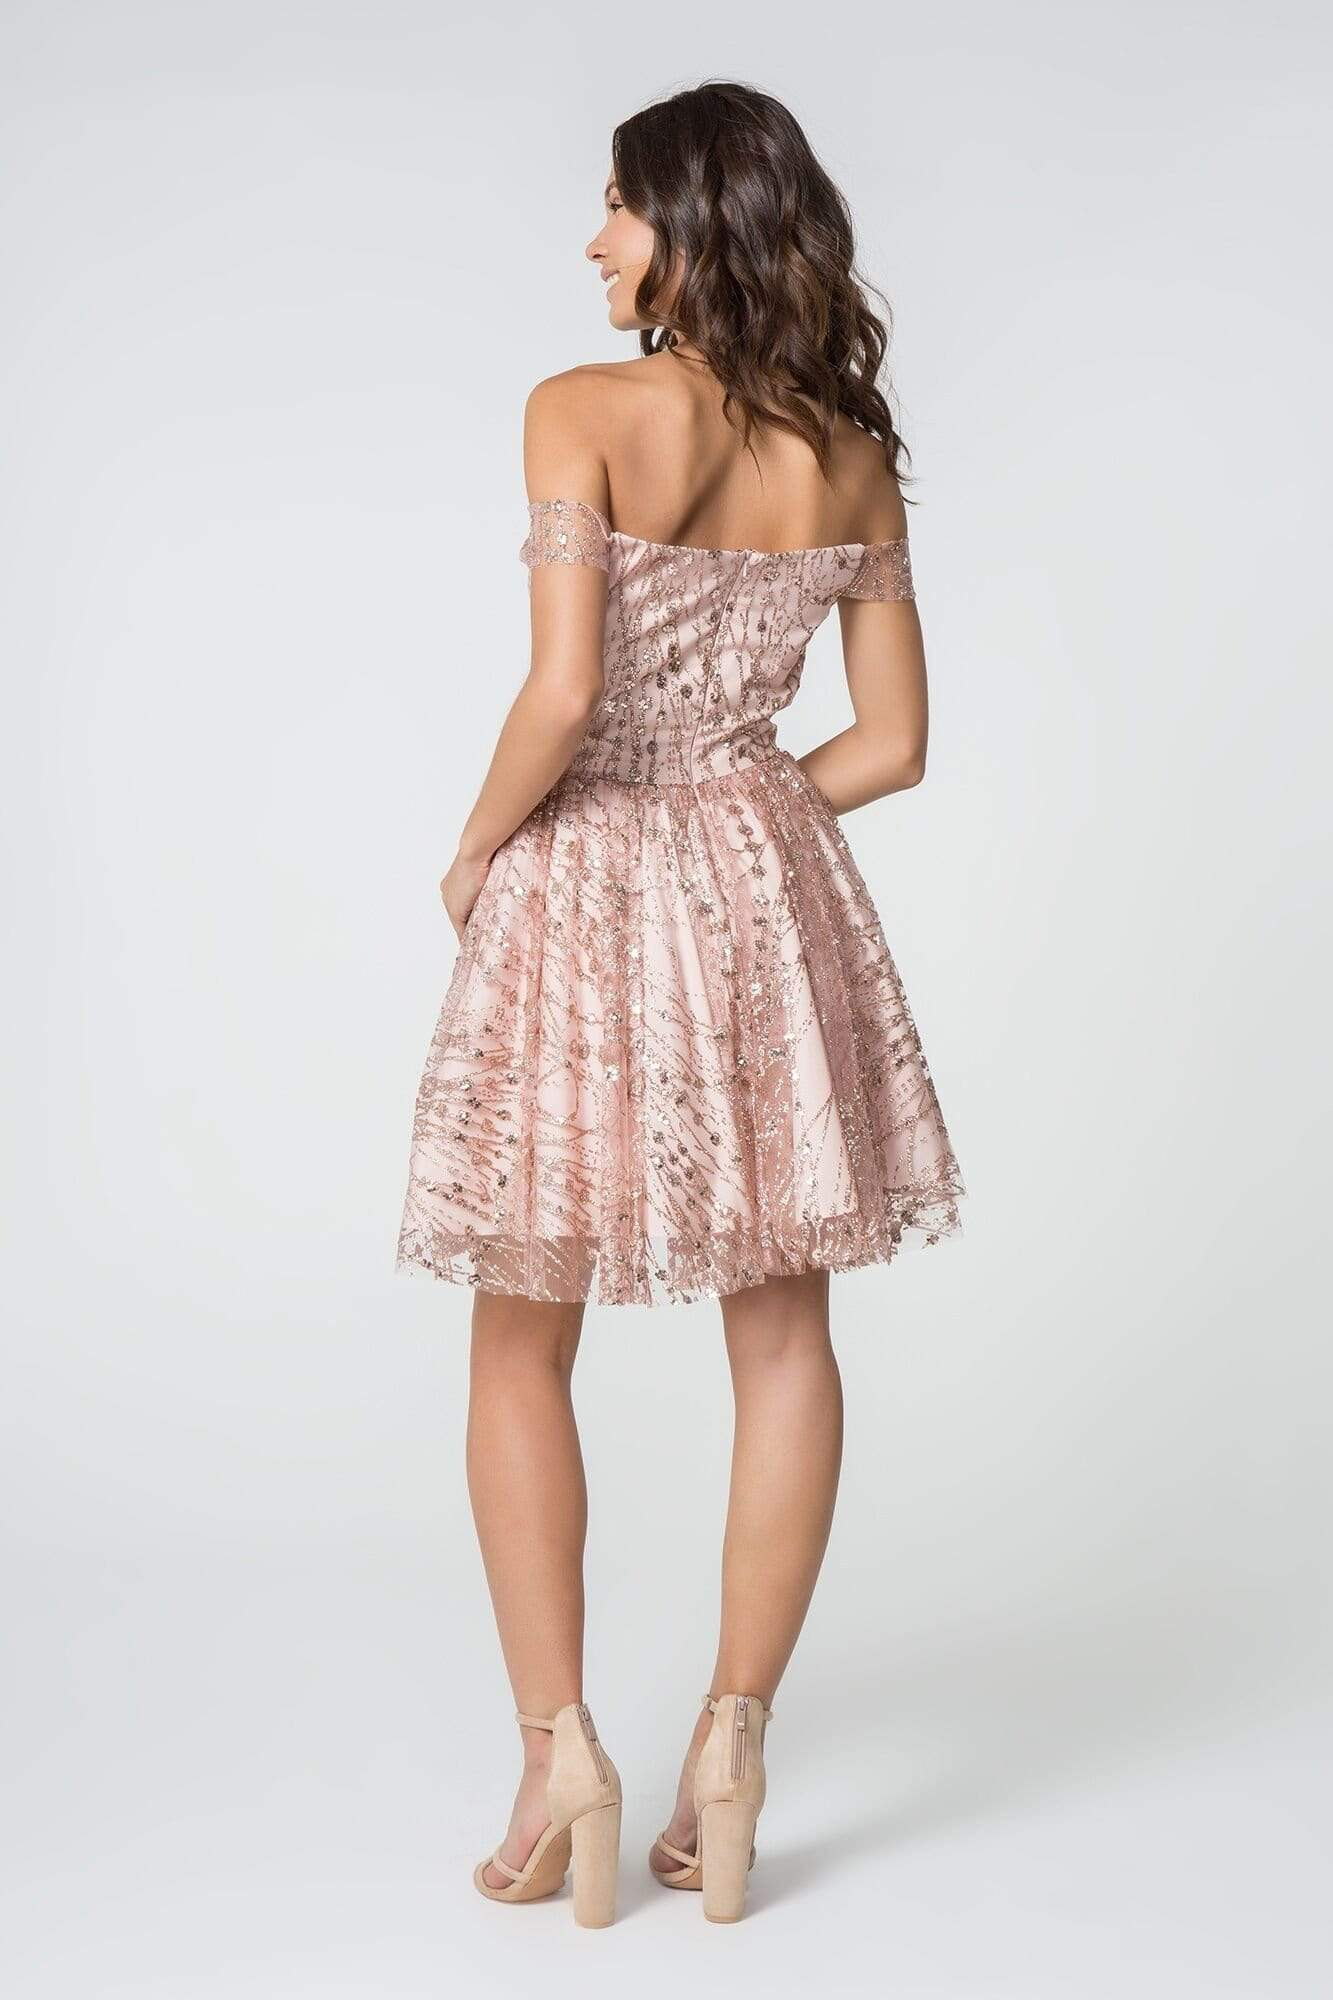 Elizabeth K - GS2833 Glitter Off-Shoulder A-Line Cocktail Dress Homecoming Dresses